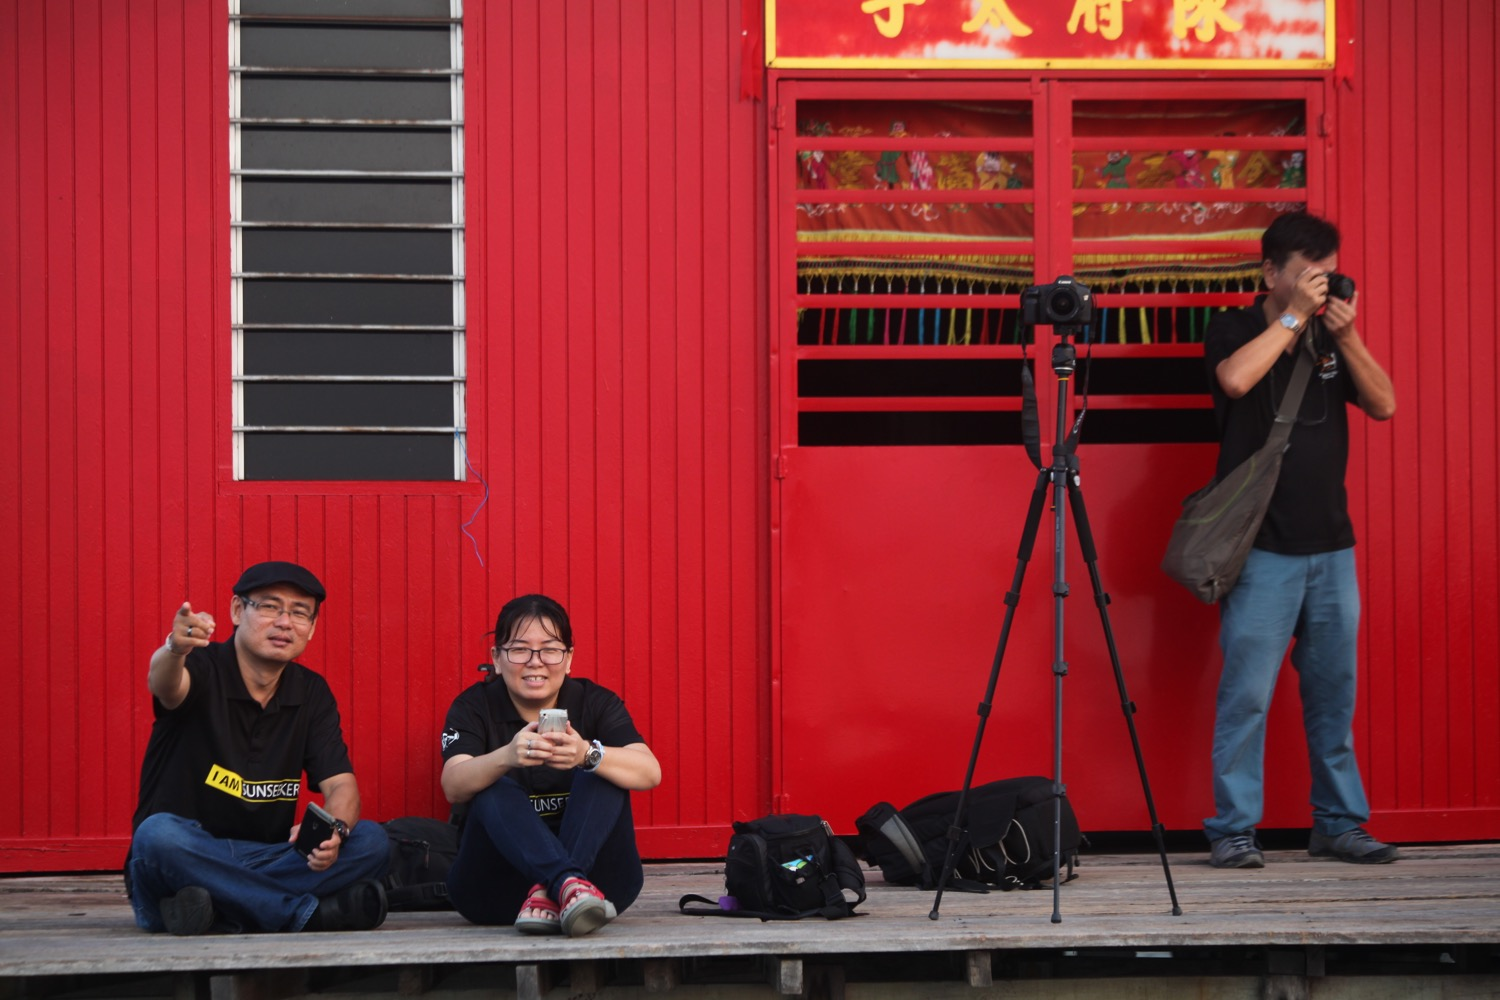 9 Tips for Aspiring Young Photographers - group of photographers and a red building